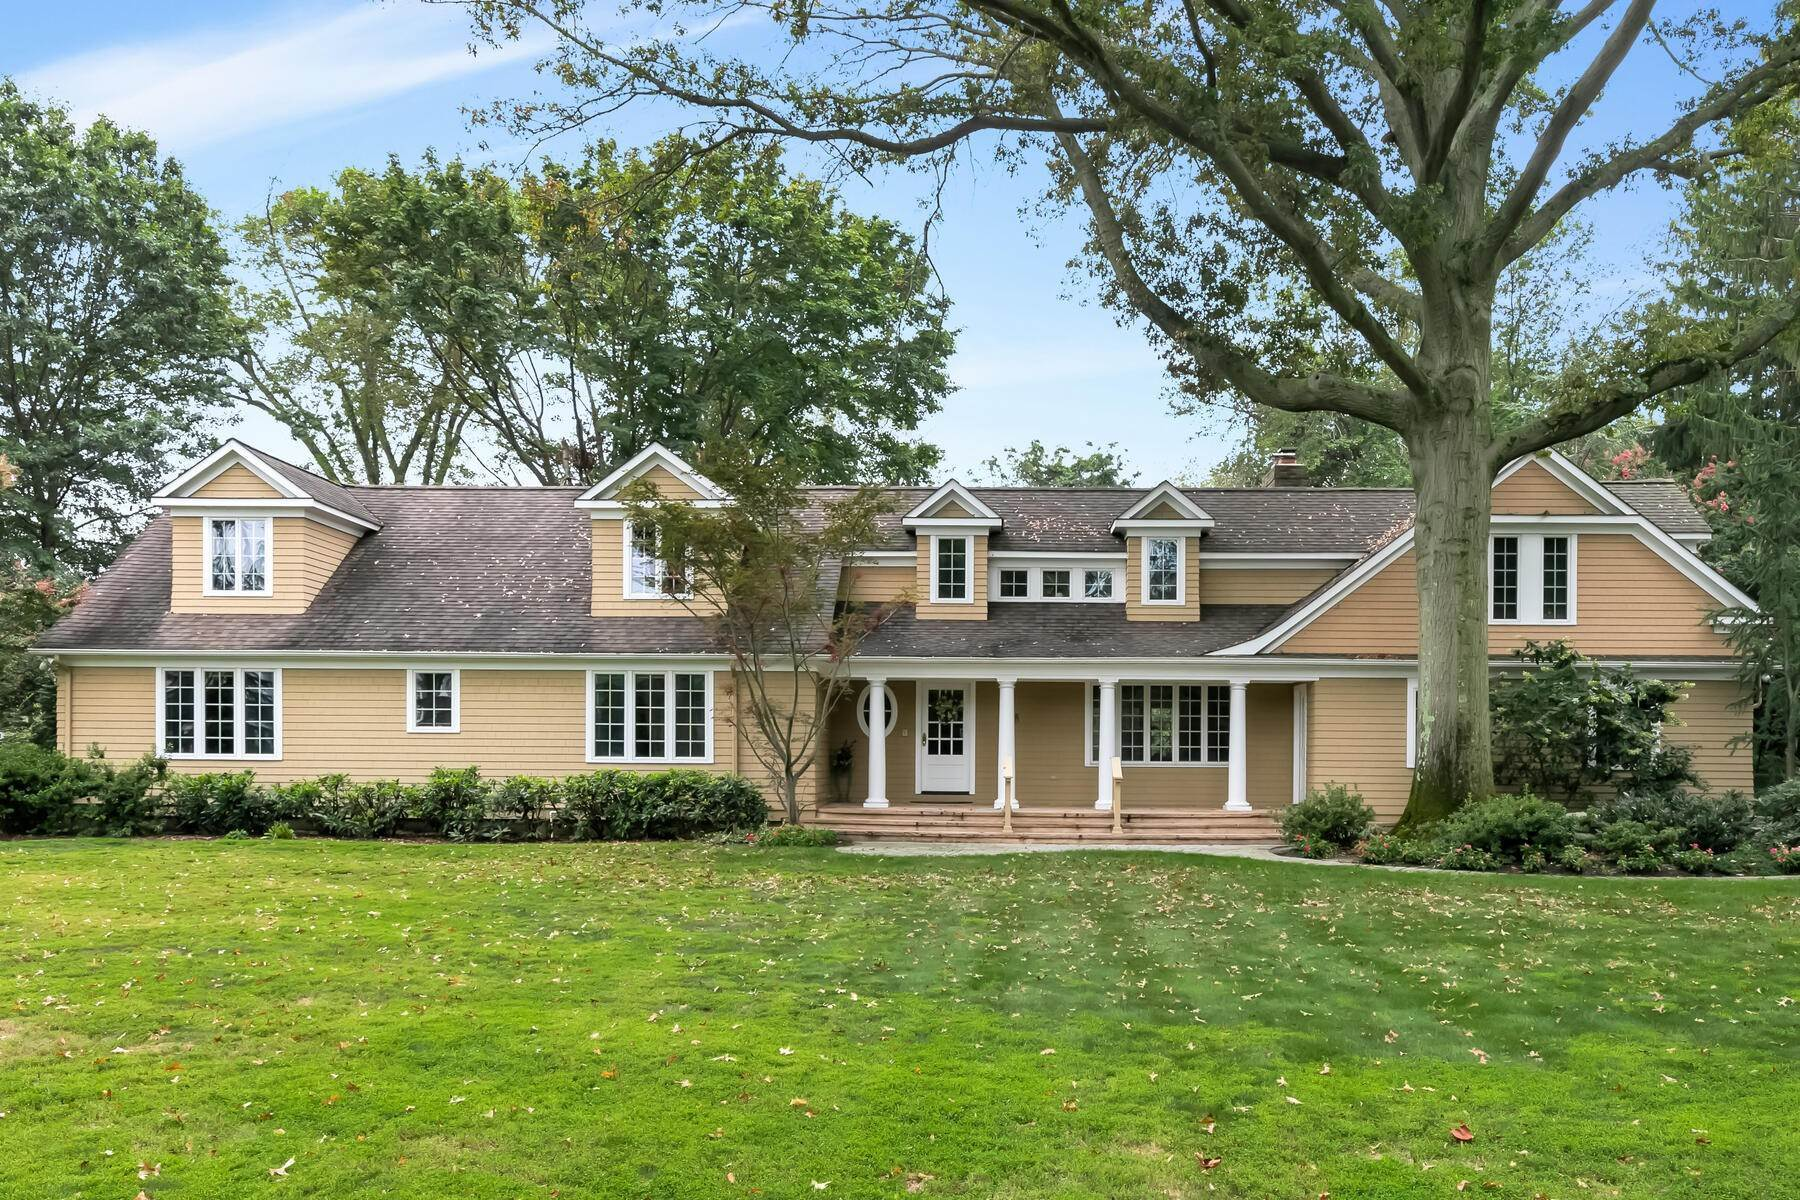 Single Family Homes for Sale at Welcome to 18 Sailers Way, Rumson 18 Sailers Way Rumson, New Jersey 07760 United States